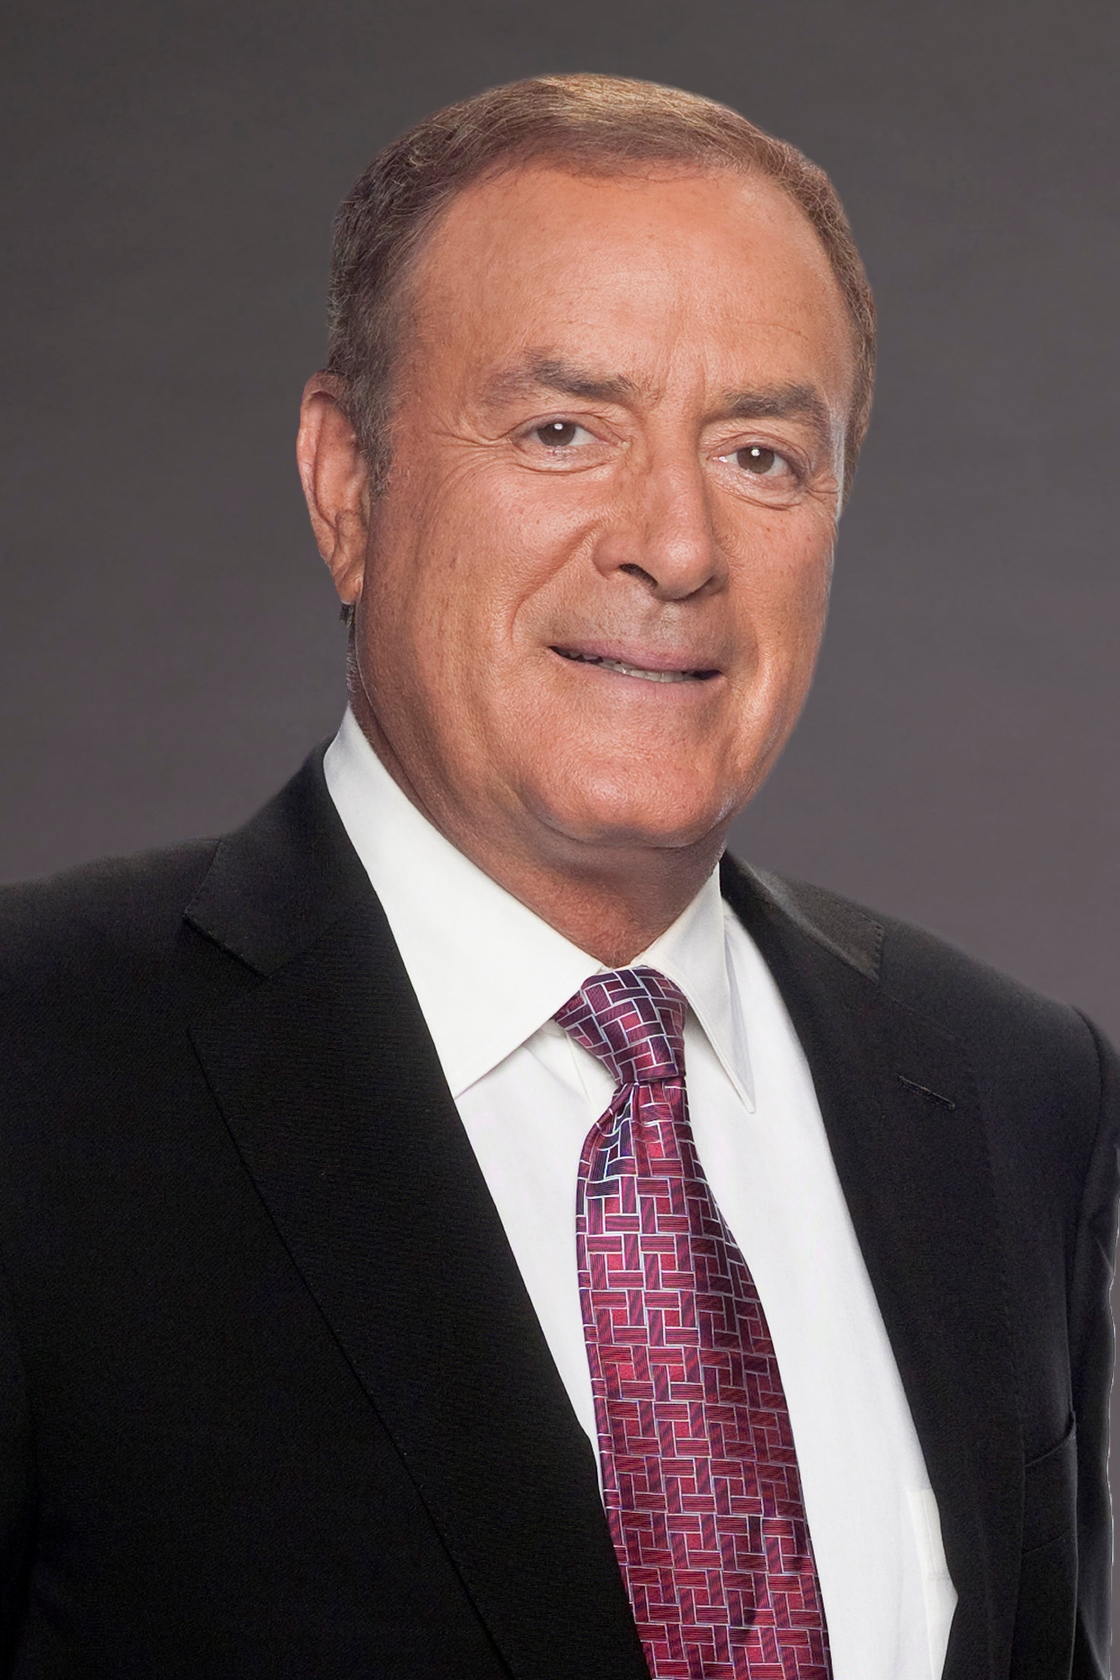 Al Michaels Epic Gambling Reference For The Pro Bowl Win